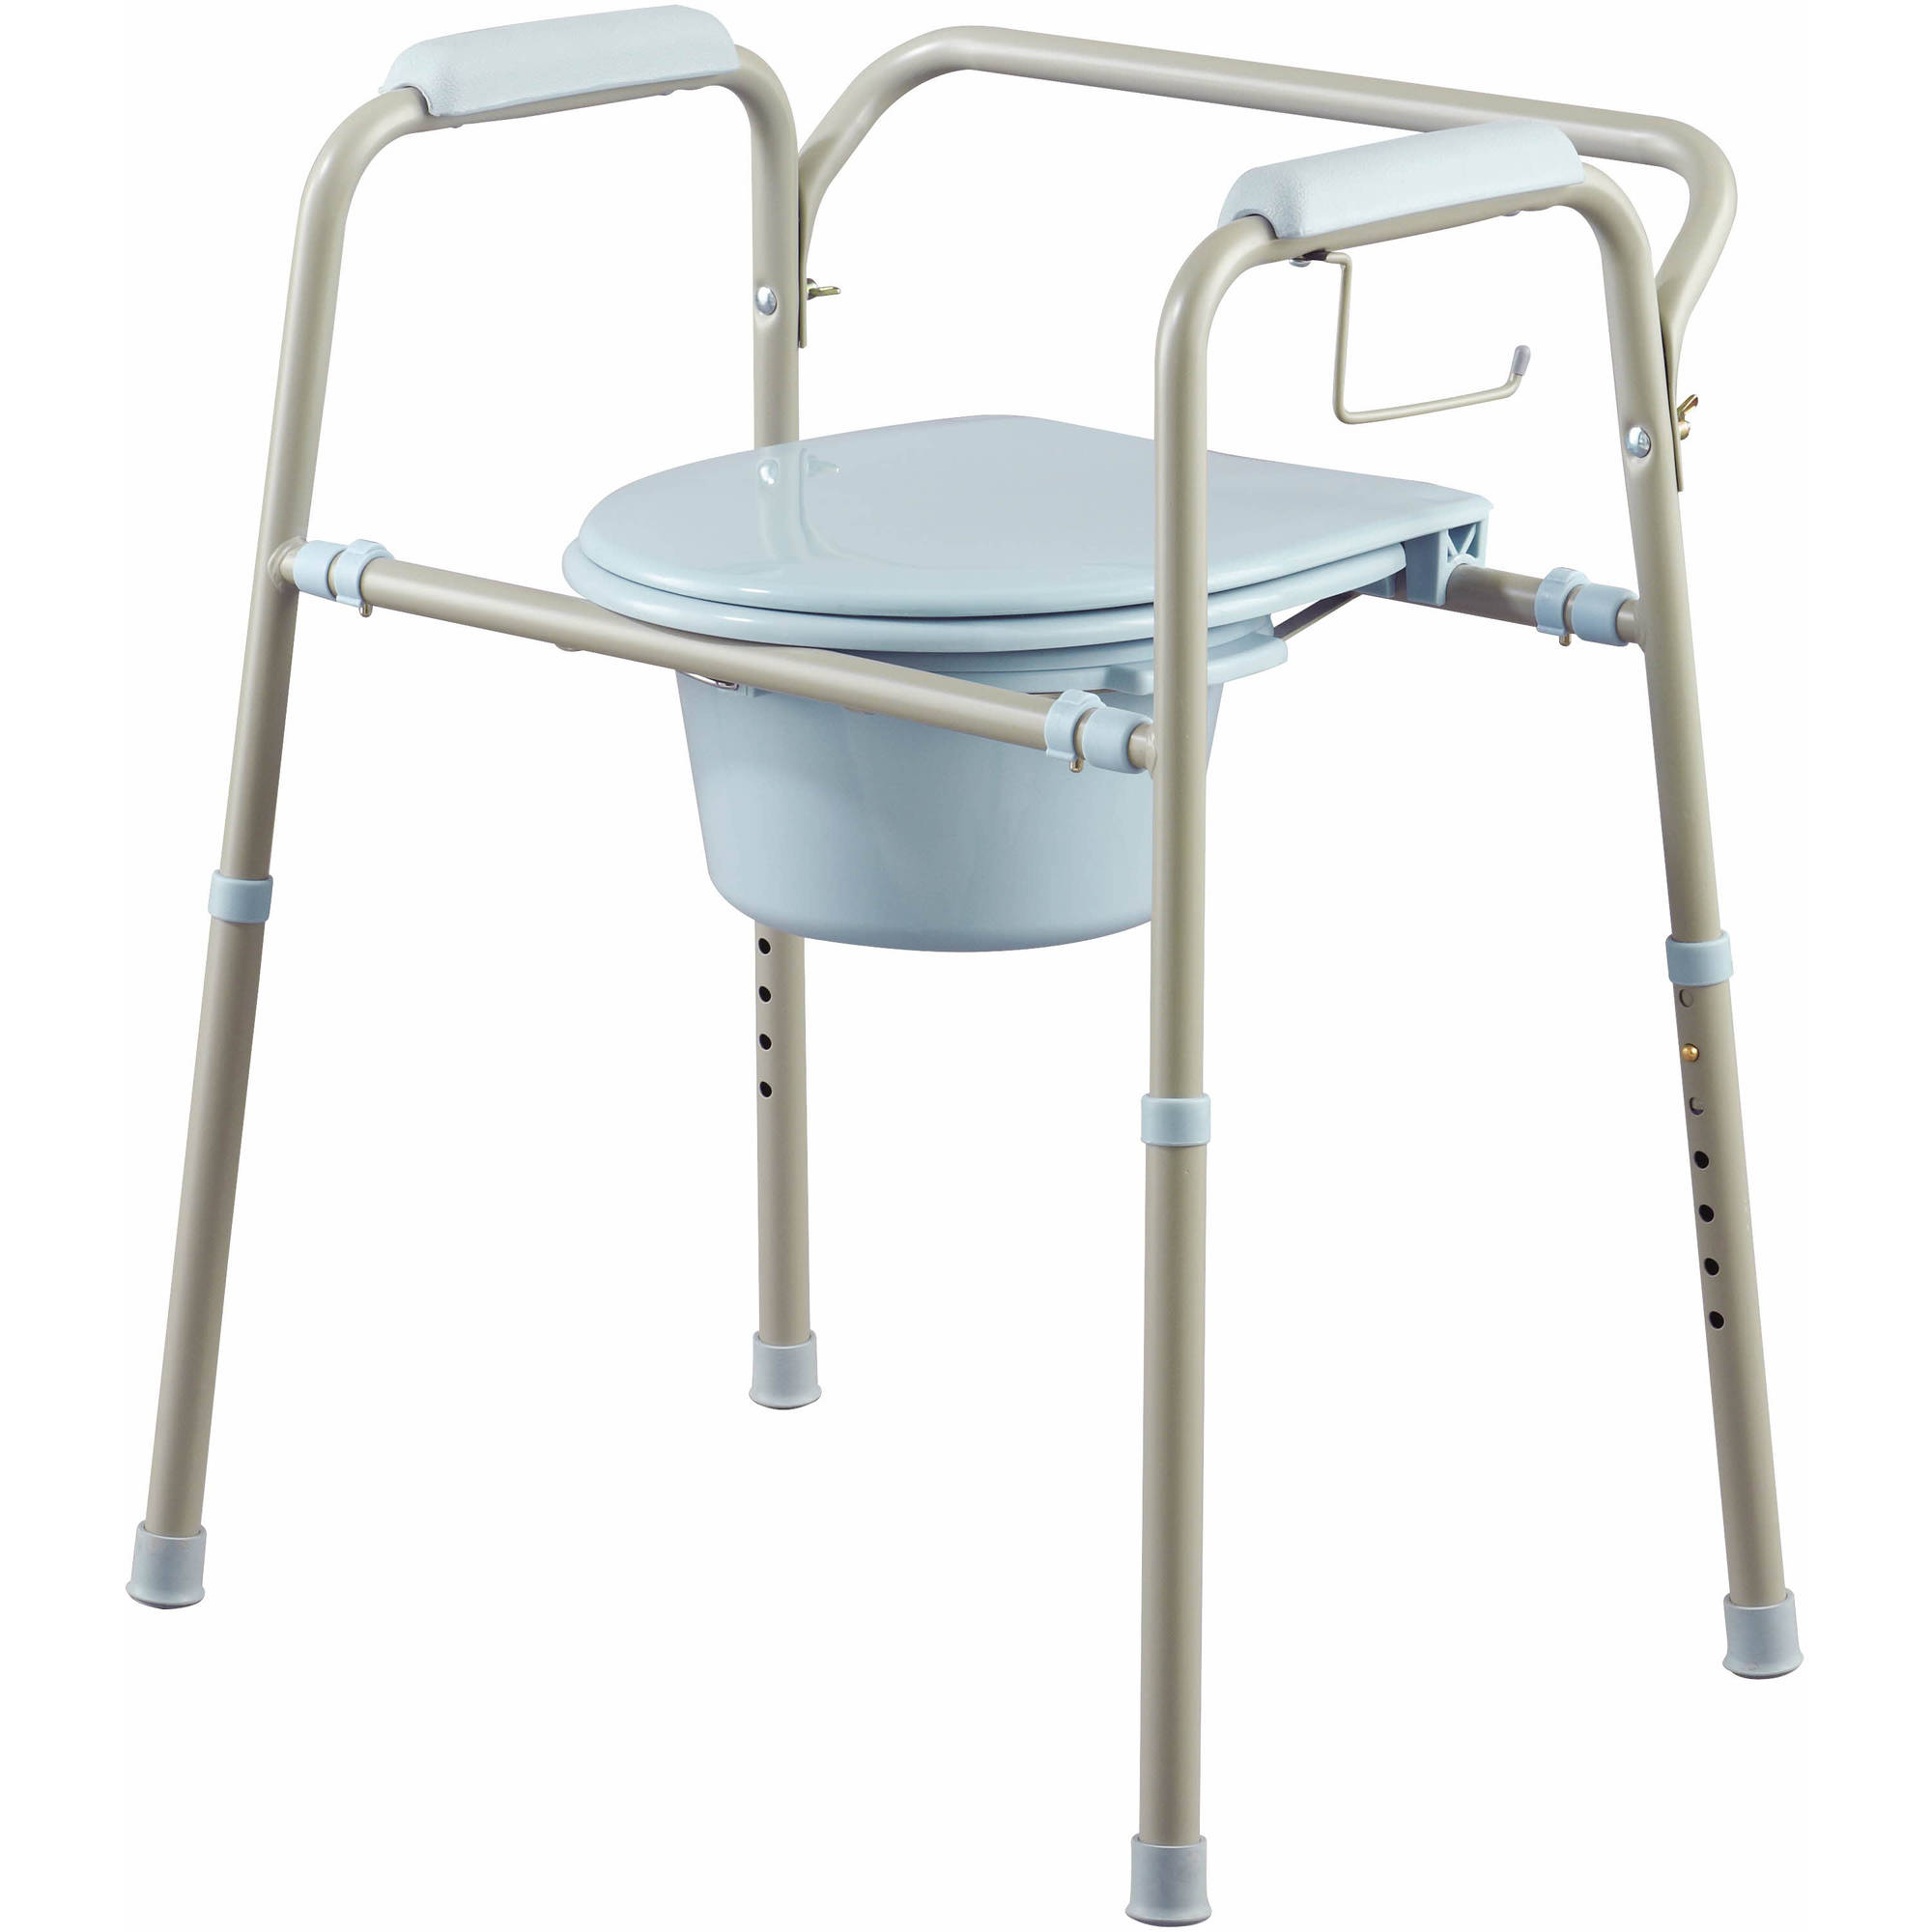 Medline Steel 3-in-1 Bedside Toilet Commode with Microban